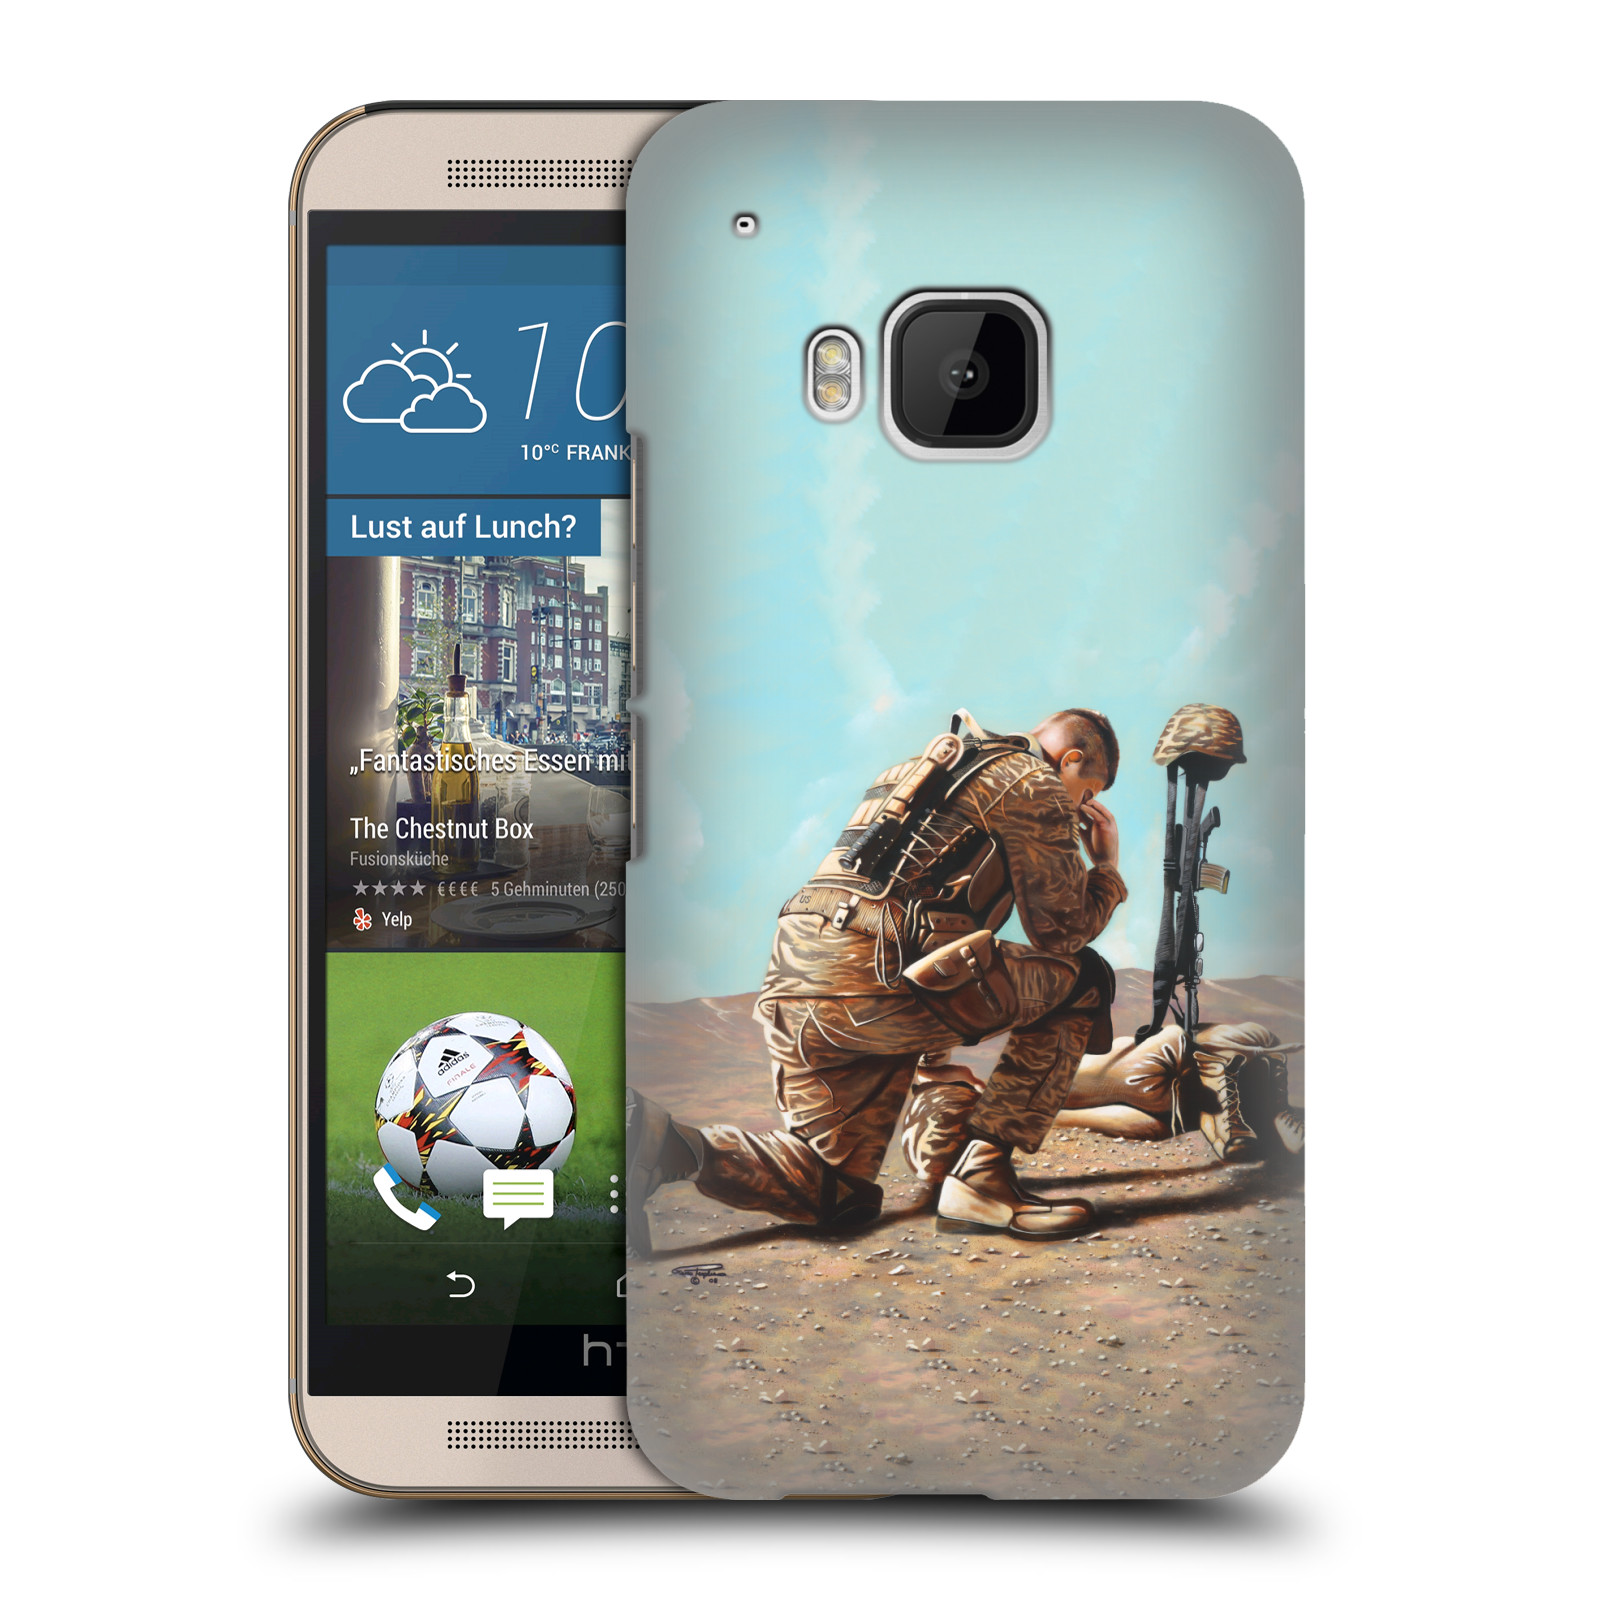 OFFICIEL-GENO-PEOPLES-ART-VIE-ETUI-COQUE-D-039-ARRIERE-RIGIDE-POUR-HTC-TELEPHONES-1